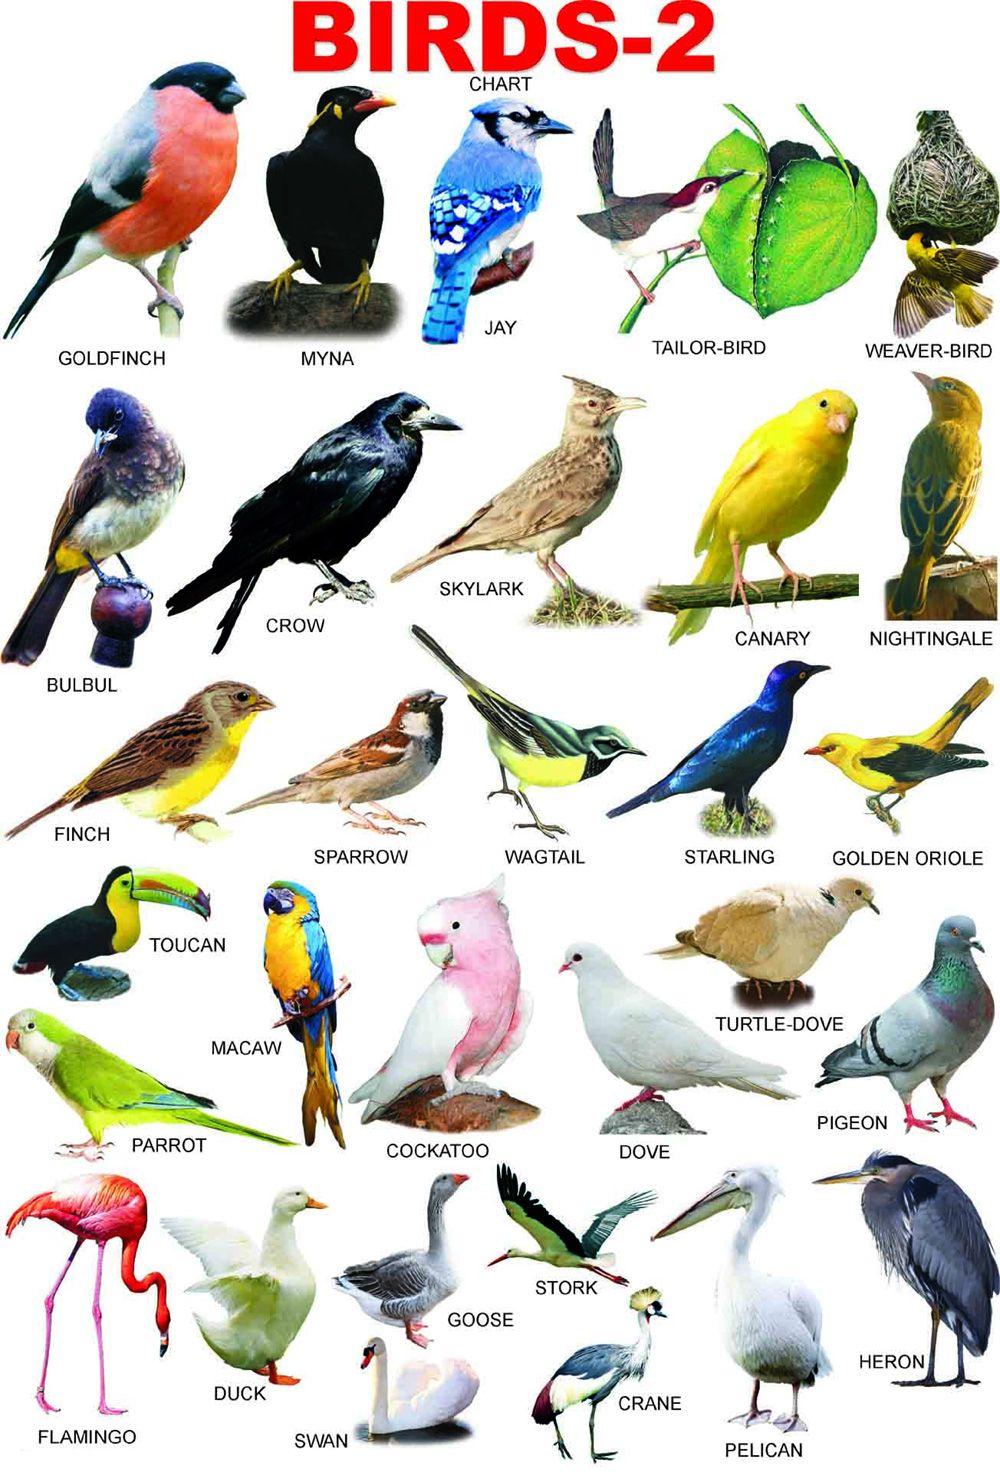 Beautiful Birds Images HD For Free Download http